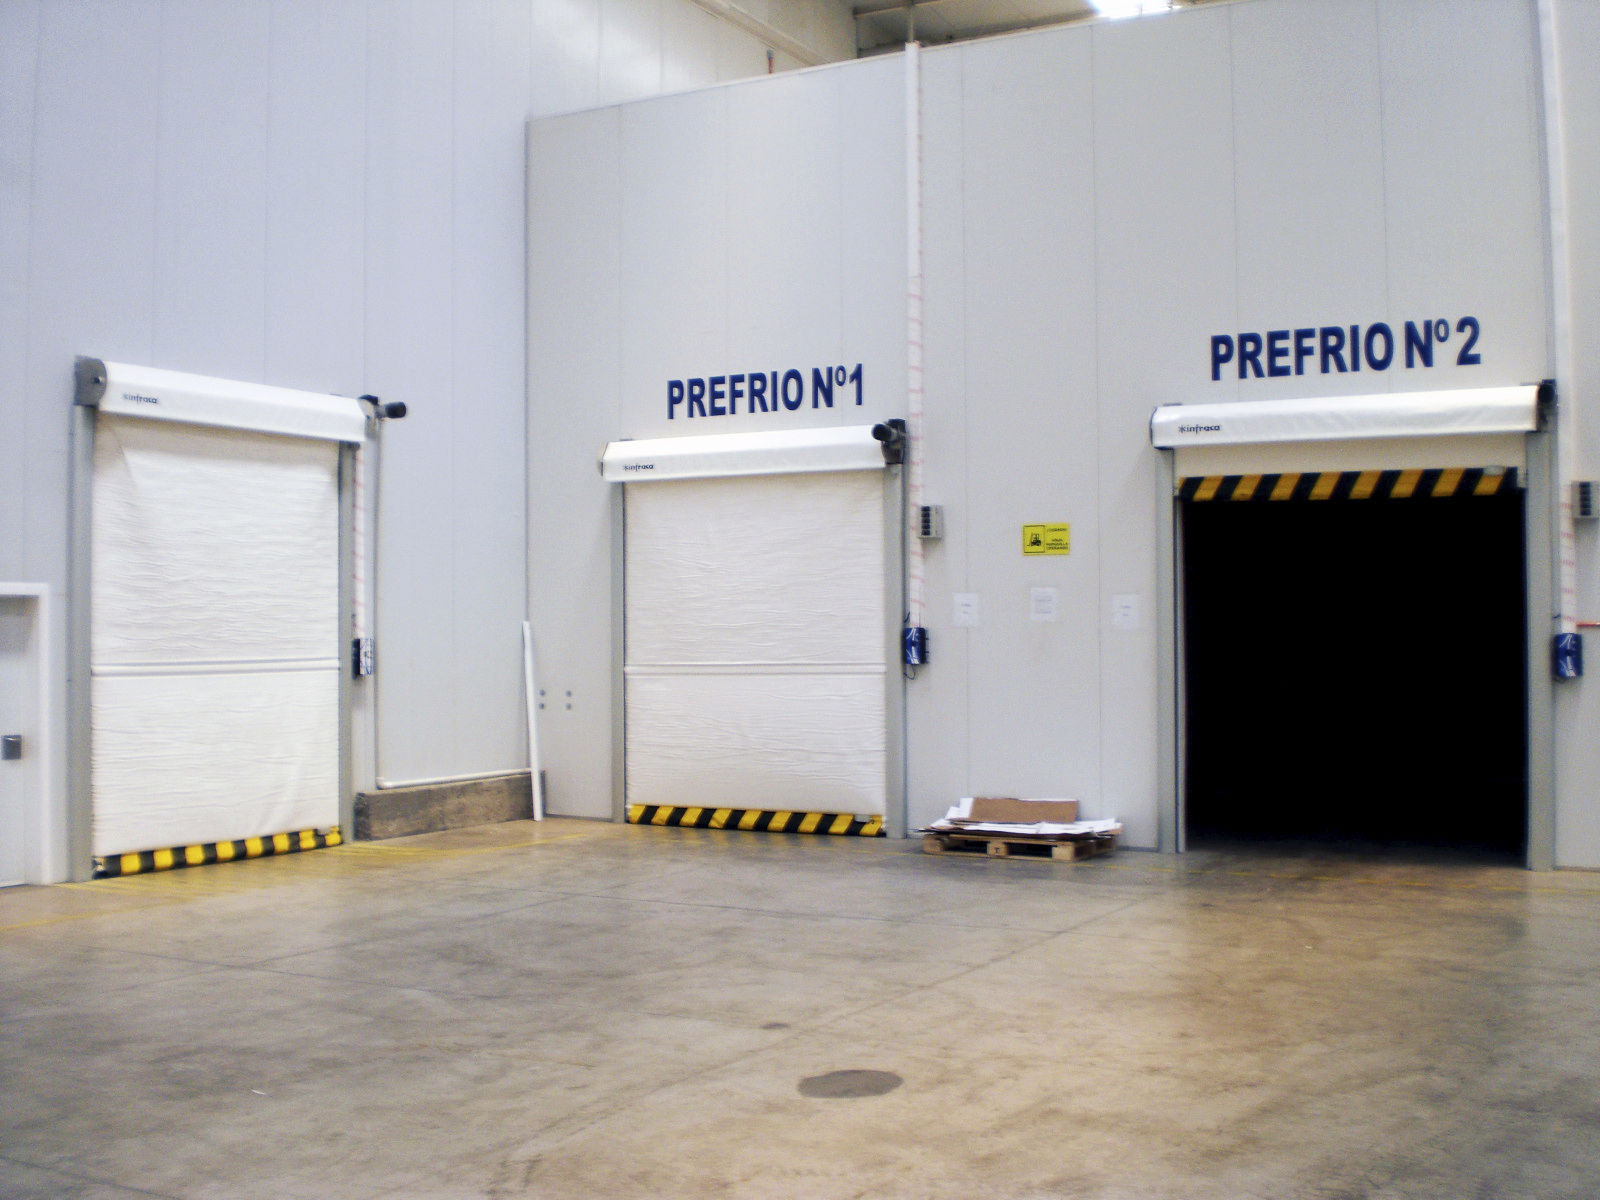 roll-up door / for cold storage / industrial / high-speed ... & Roll-up door / for cold storage / industrial / high-speed - Freezer ...